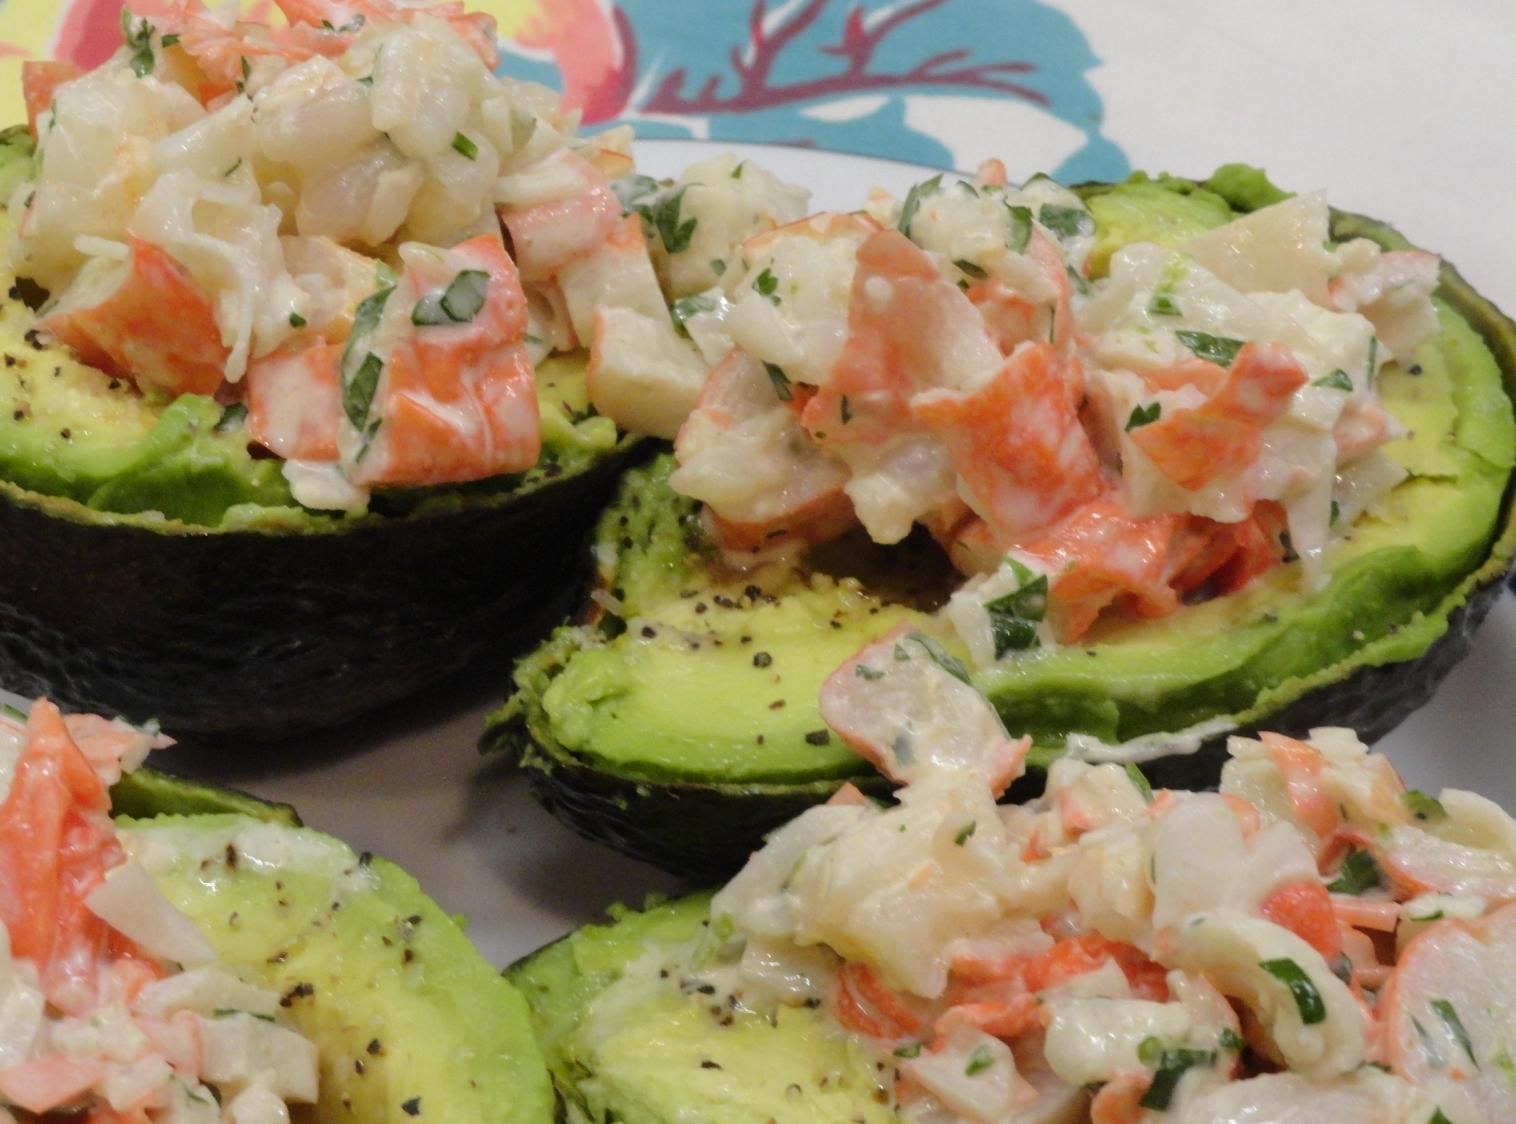 Cilantro And Lime Crab Salad In Avocado Halves Recipe — Dishmaps